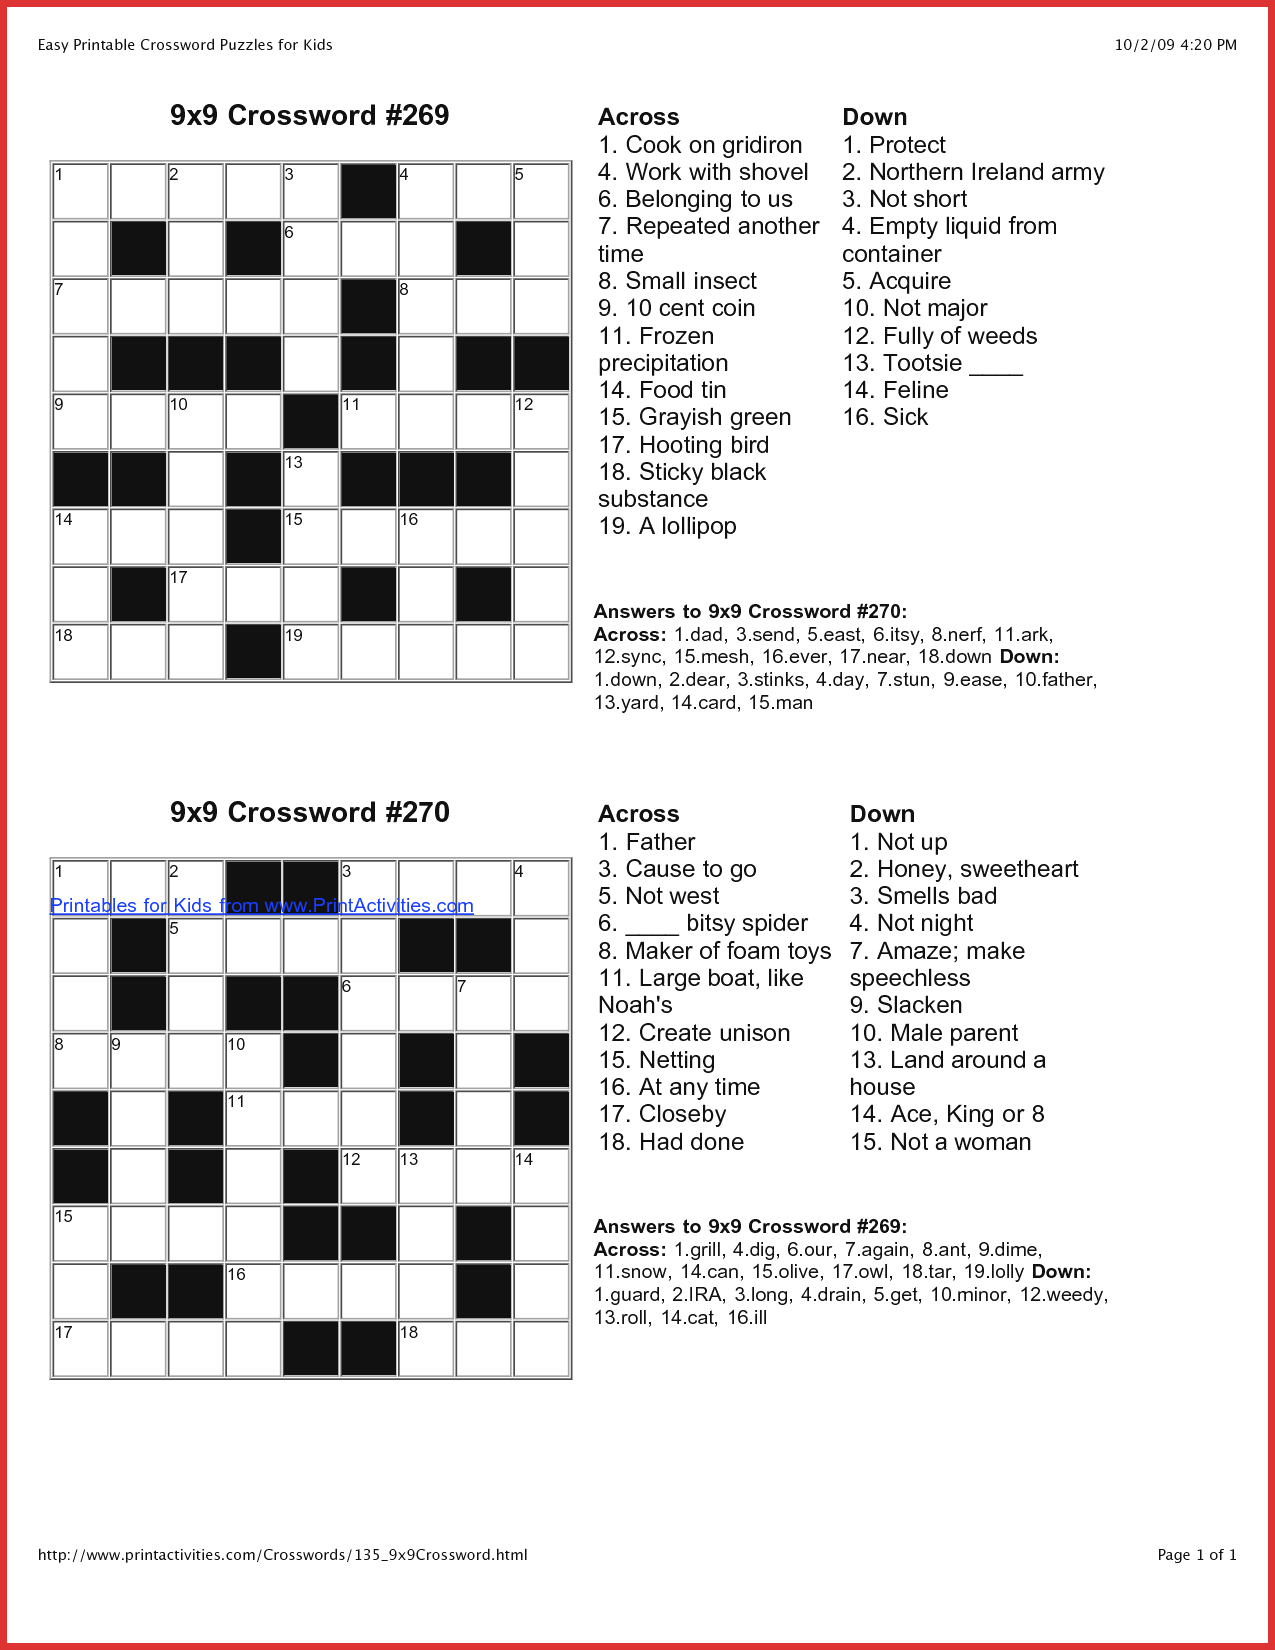 Coloring ~ Coloring Easy Printable Crossword Puzzles Large Print - Free Printable Universal Crossword Puzzle